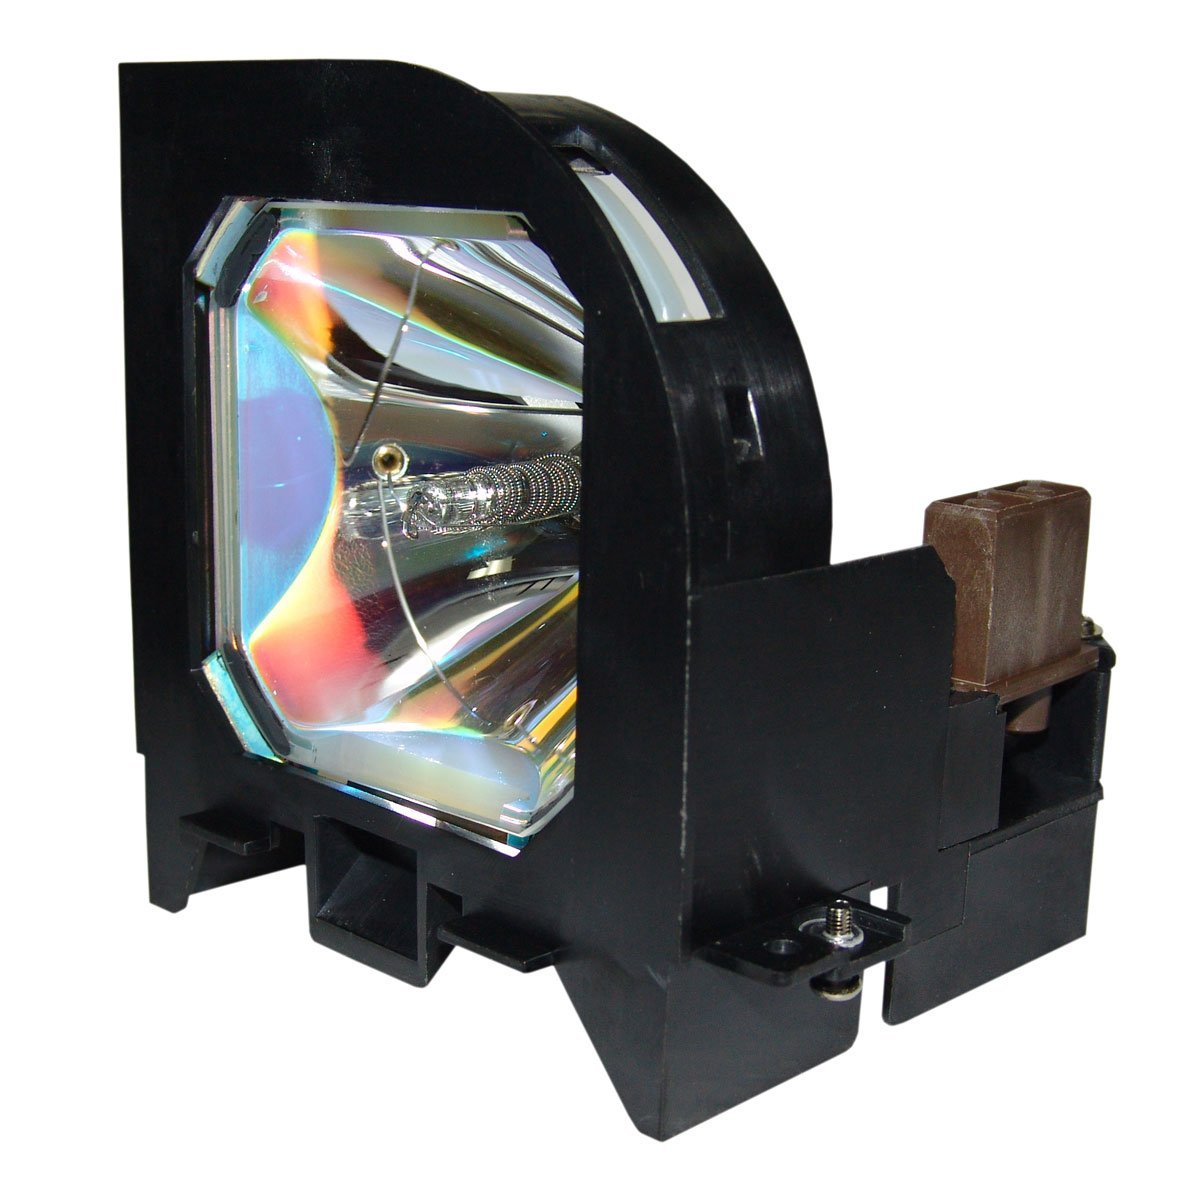 Projector Lamp Bulb LMP-F250 LMPF250 for SONY VPL-FX50 VPL-FE110 with housing lmp h160 lmph160 for sony vpl aw10 vpl aw10s vpl aw15 vpl aw15s projector bulb lamp with housing with 180 days warranty